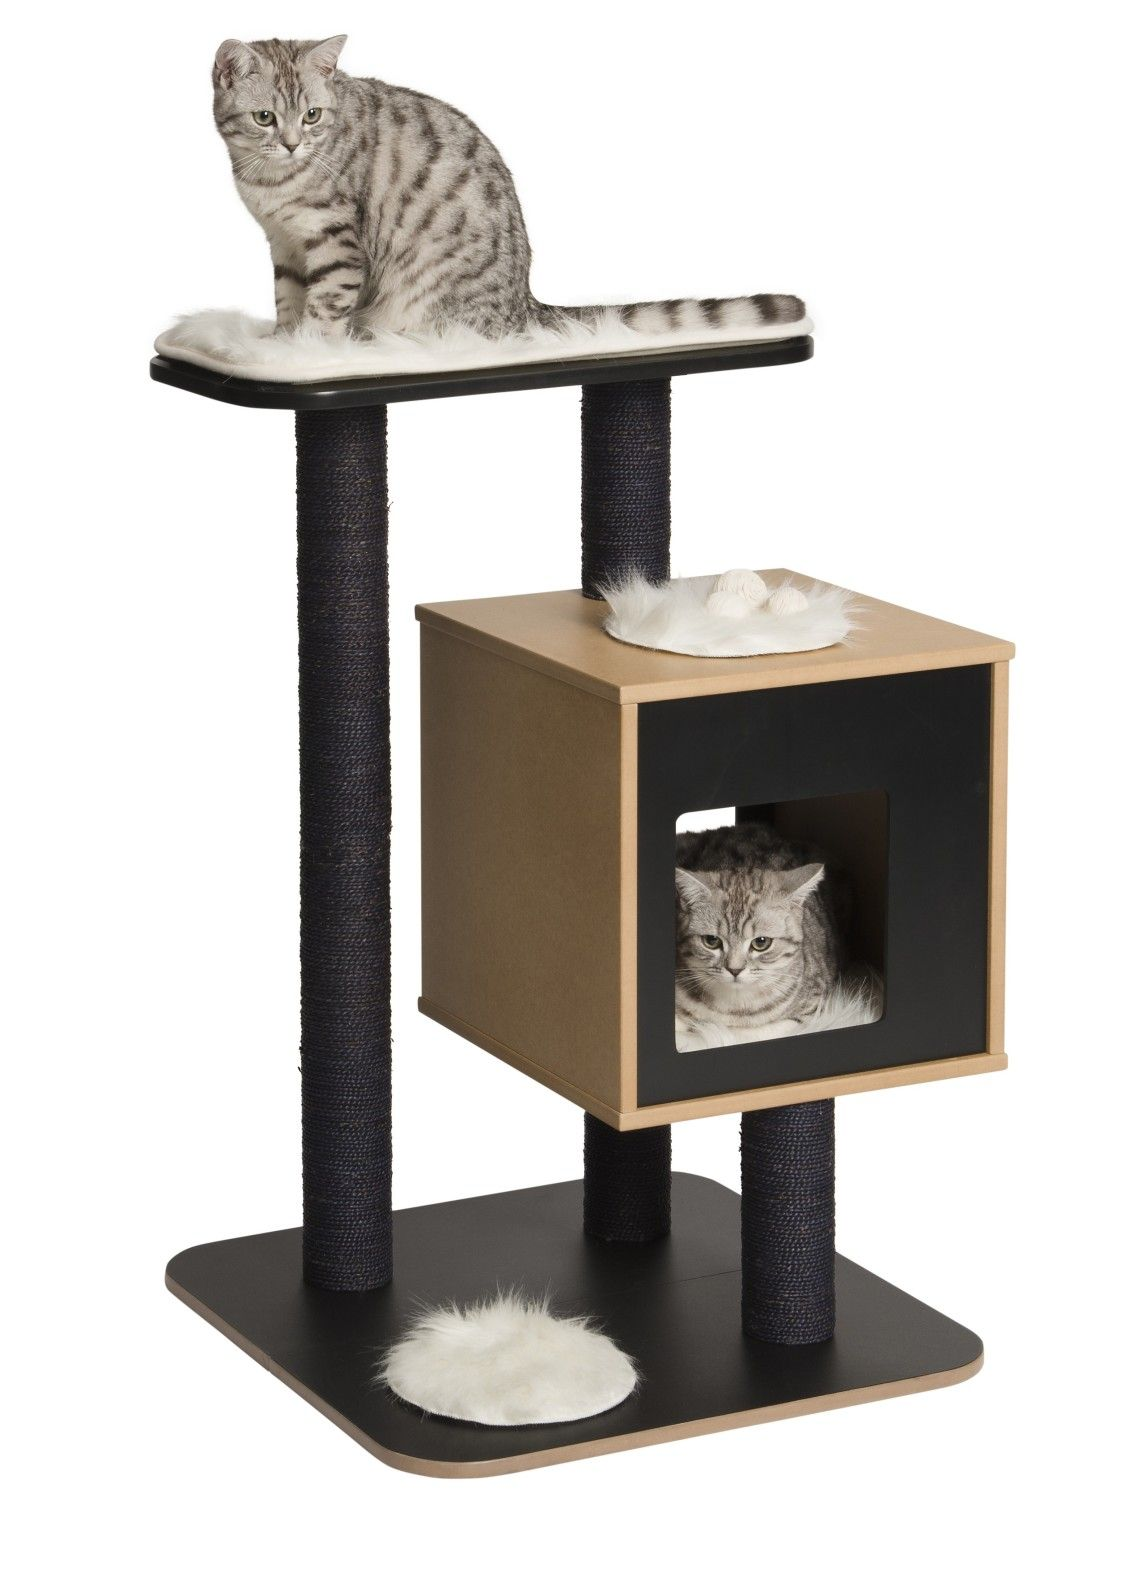 Astonishing design ideas of unique cat trees with black brown colors cat housing and black perch also scratching post as well as tree scratching post also